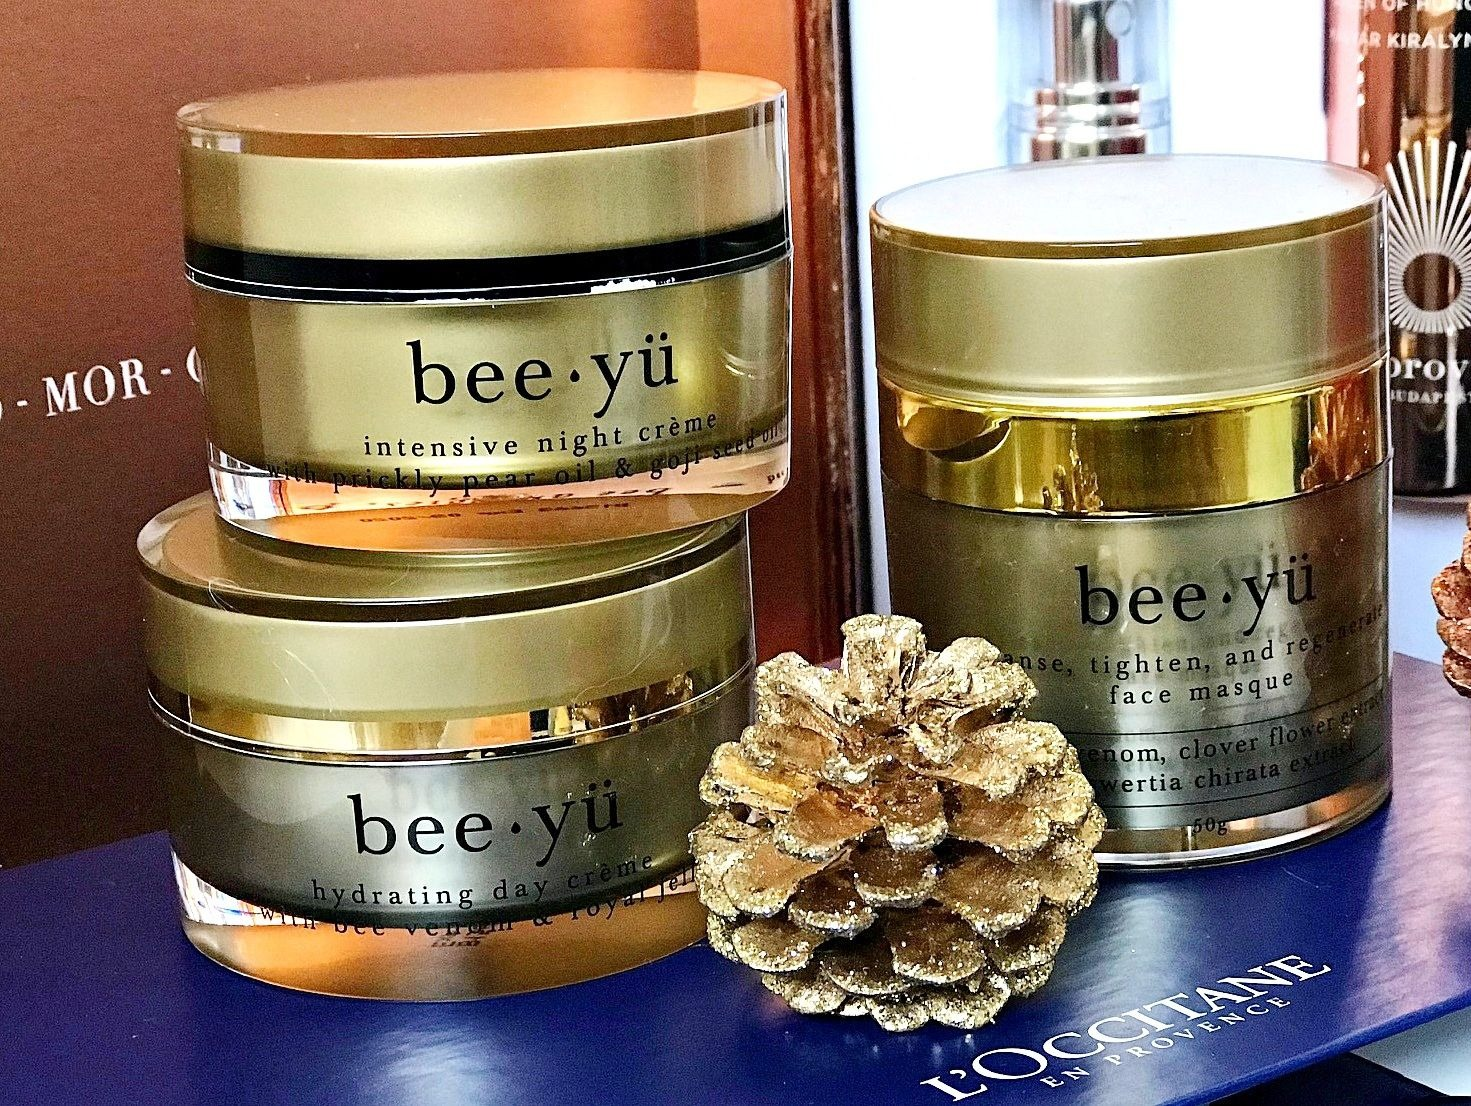 The Complete Bee Yü Natural Skincare Collection Review